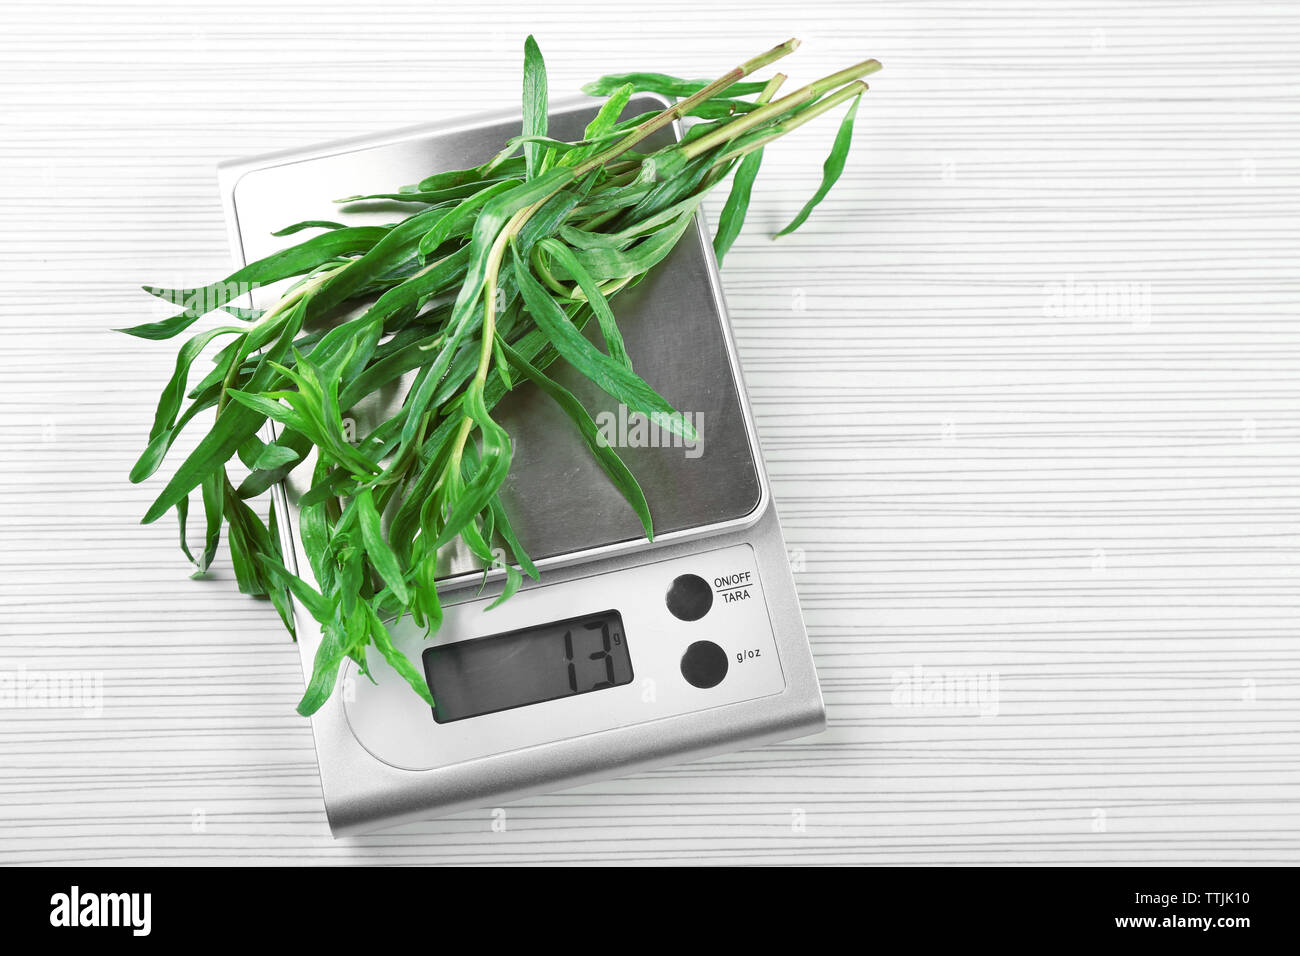 Herbs with digital kitchen scales on wooden background - Stock Image